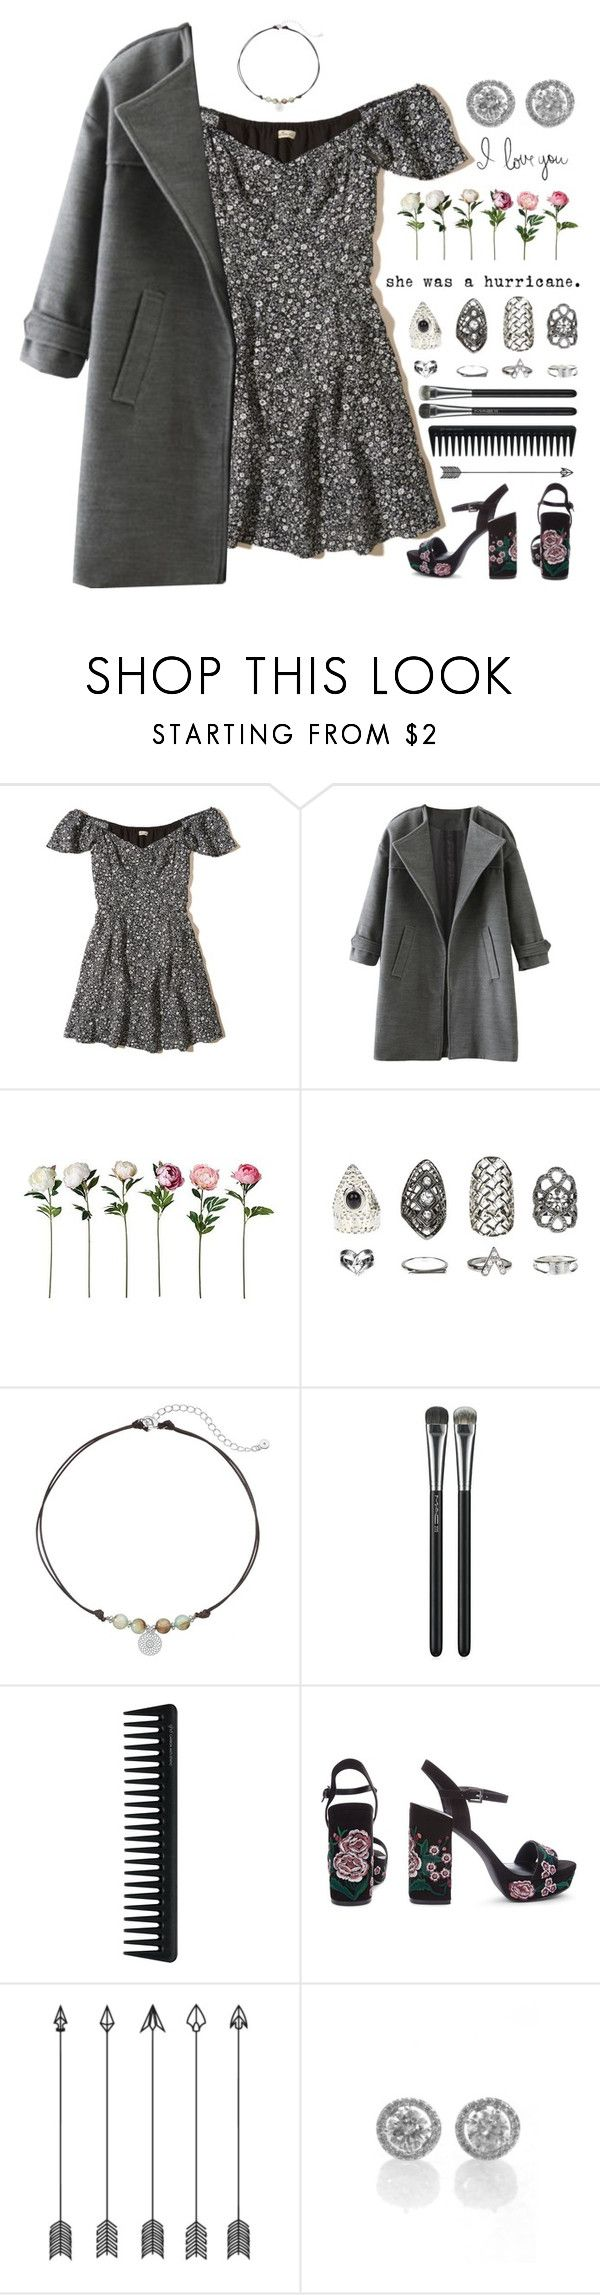 """""""Yvonne"""" by brie-the-pixie ❤ liked on Polyvore featuring Hollister Co., Relic, LC Lauren Conrad, MAC Cosmetics and GHD"""